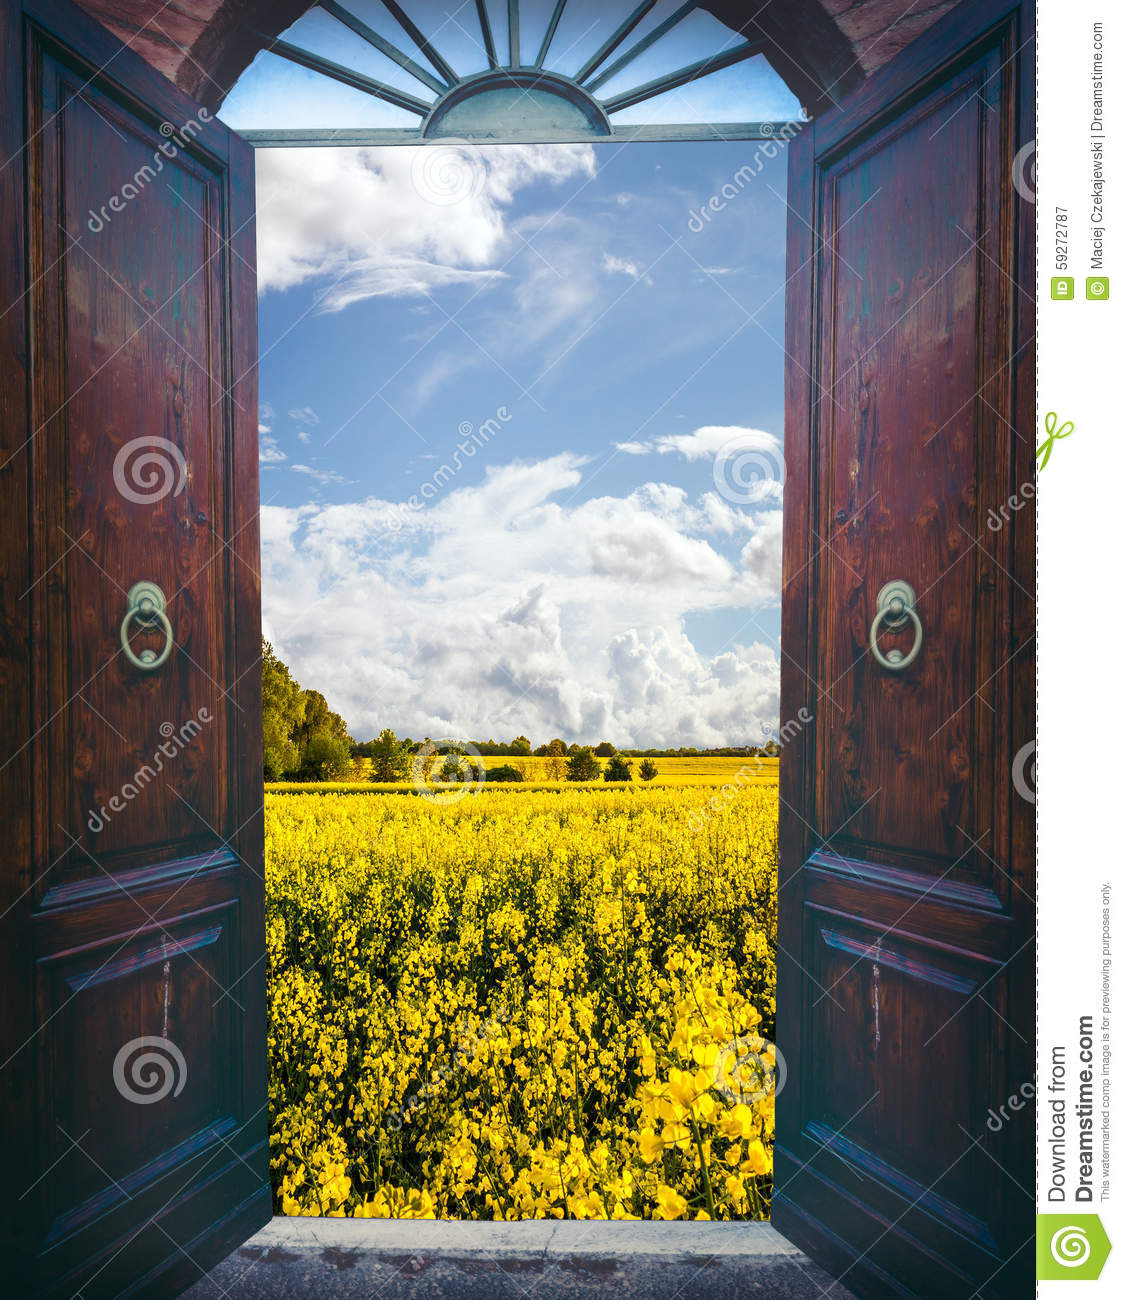 Open door and landscape & Open door and landscape stock image. Image of clouds - 59272787